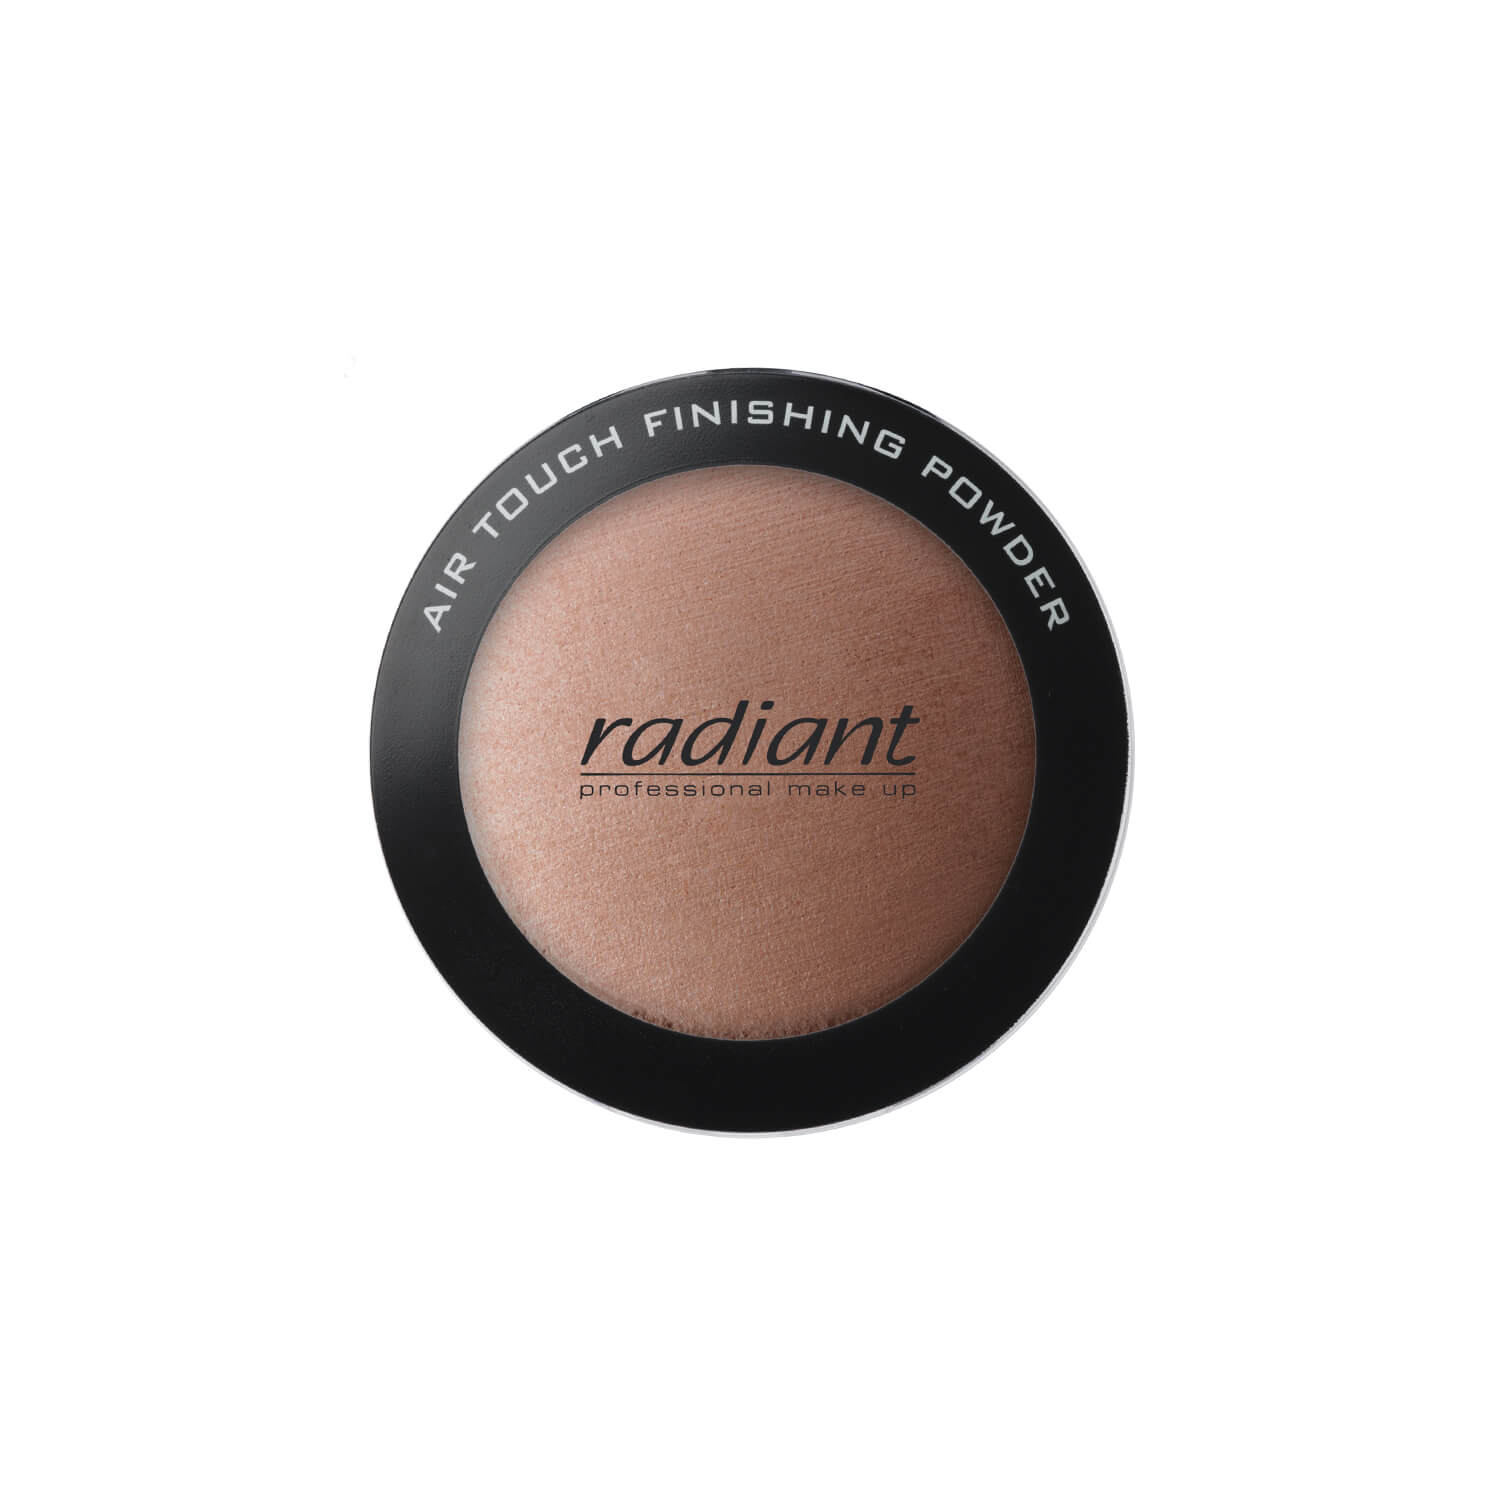 AIR TOUCH FINISHING POWDER (03 Light Tan)